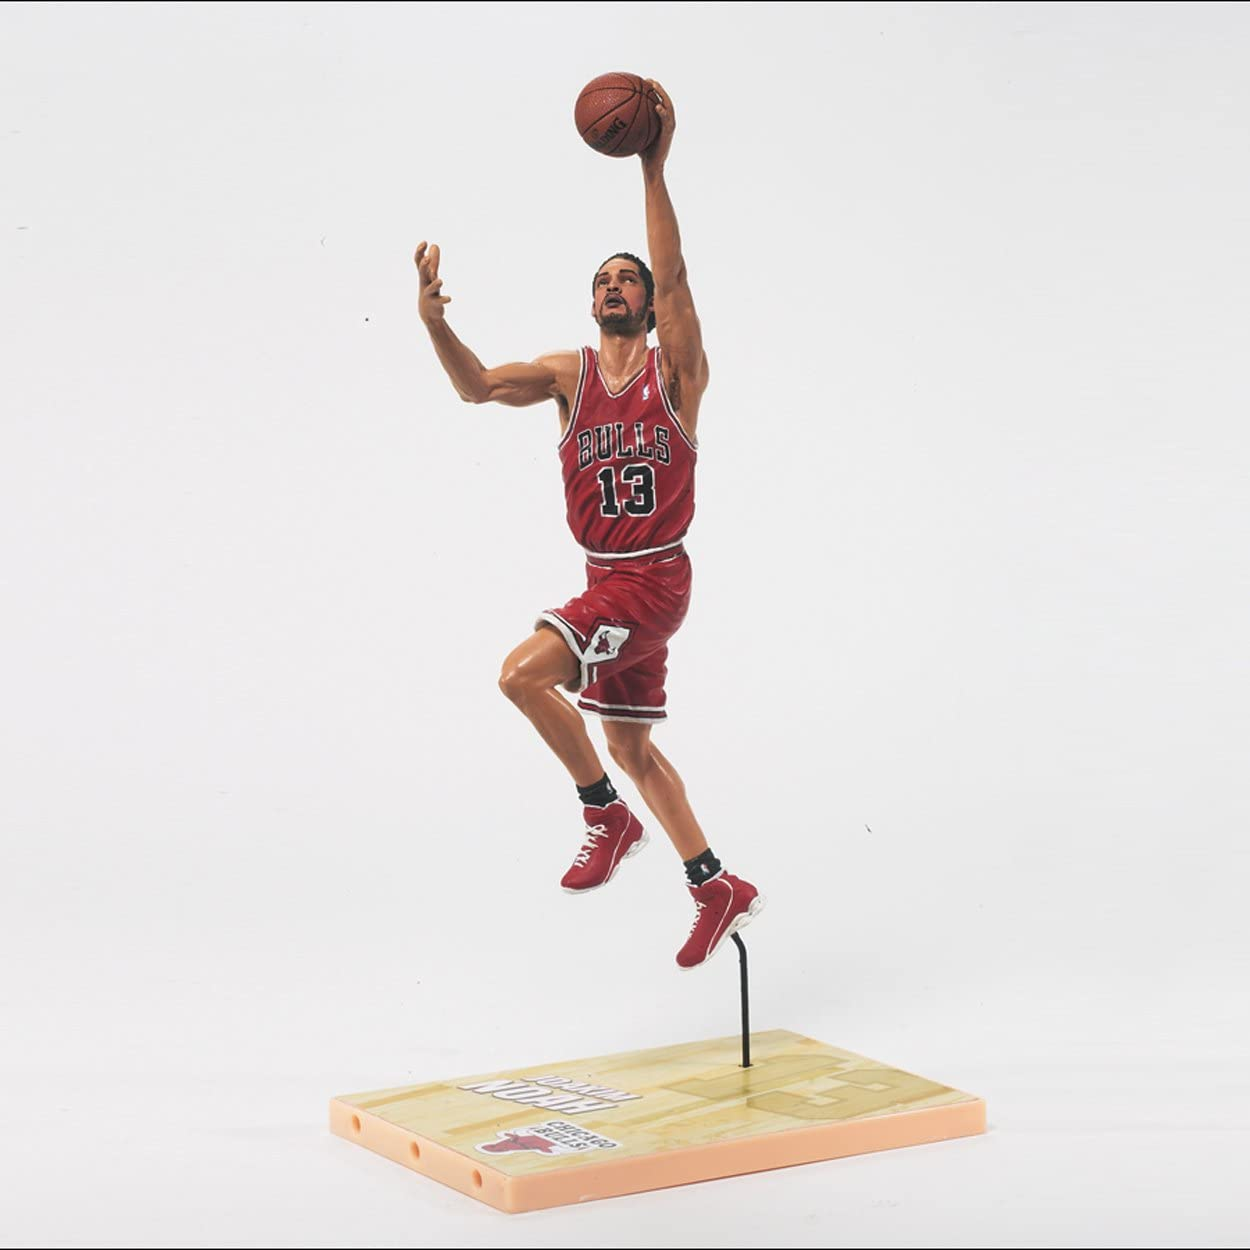 McFarlane Toys NBA Series 23 Joakim Noah Action Figure: Amazon.es: Juguetes y juegos